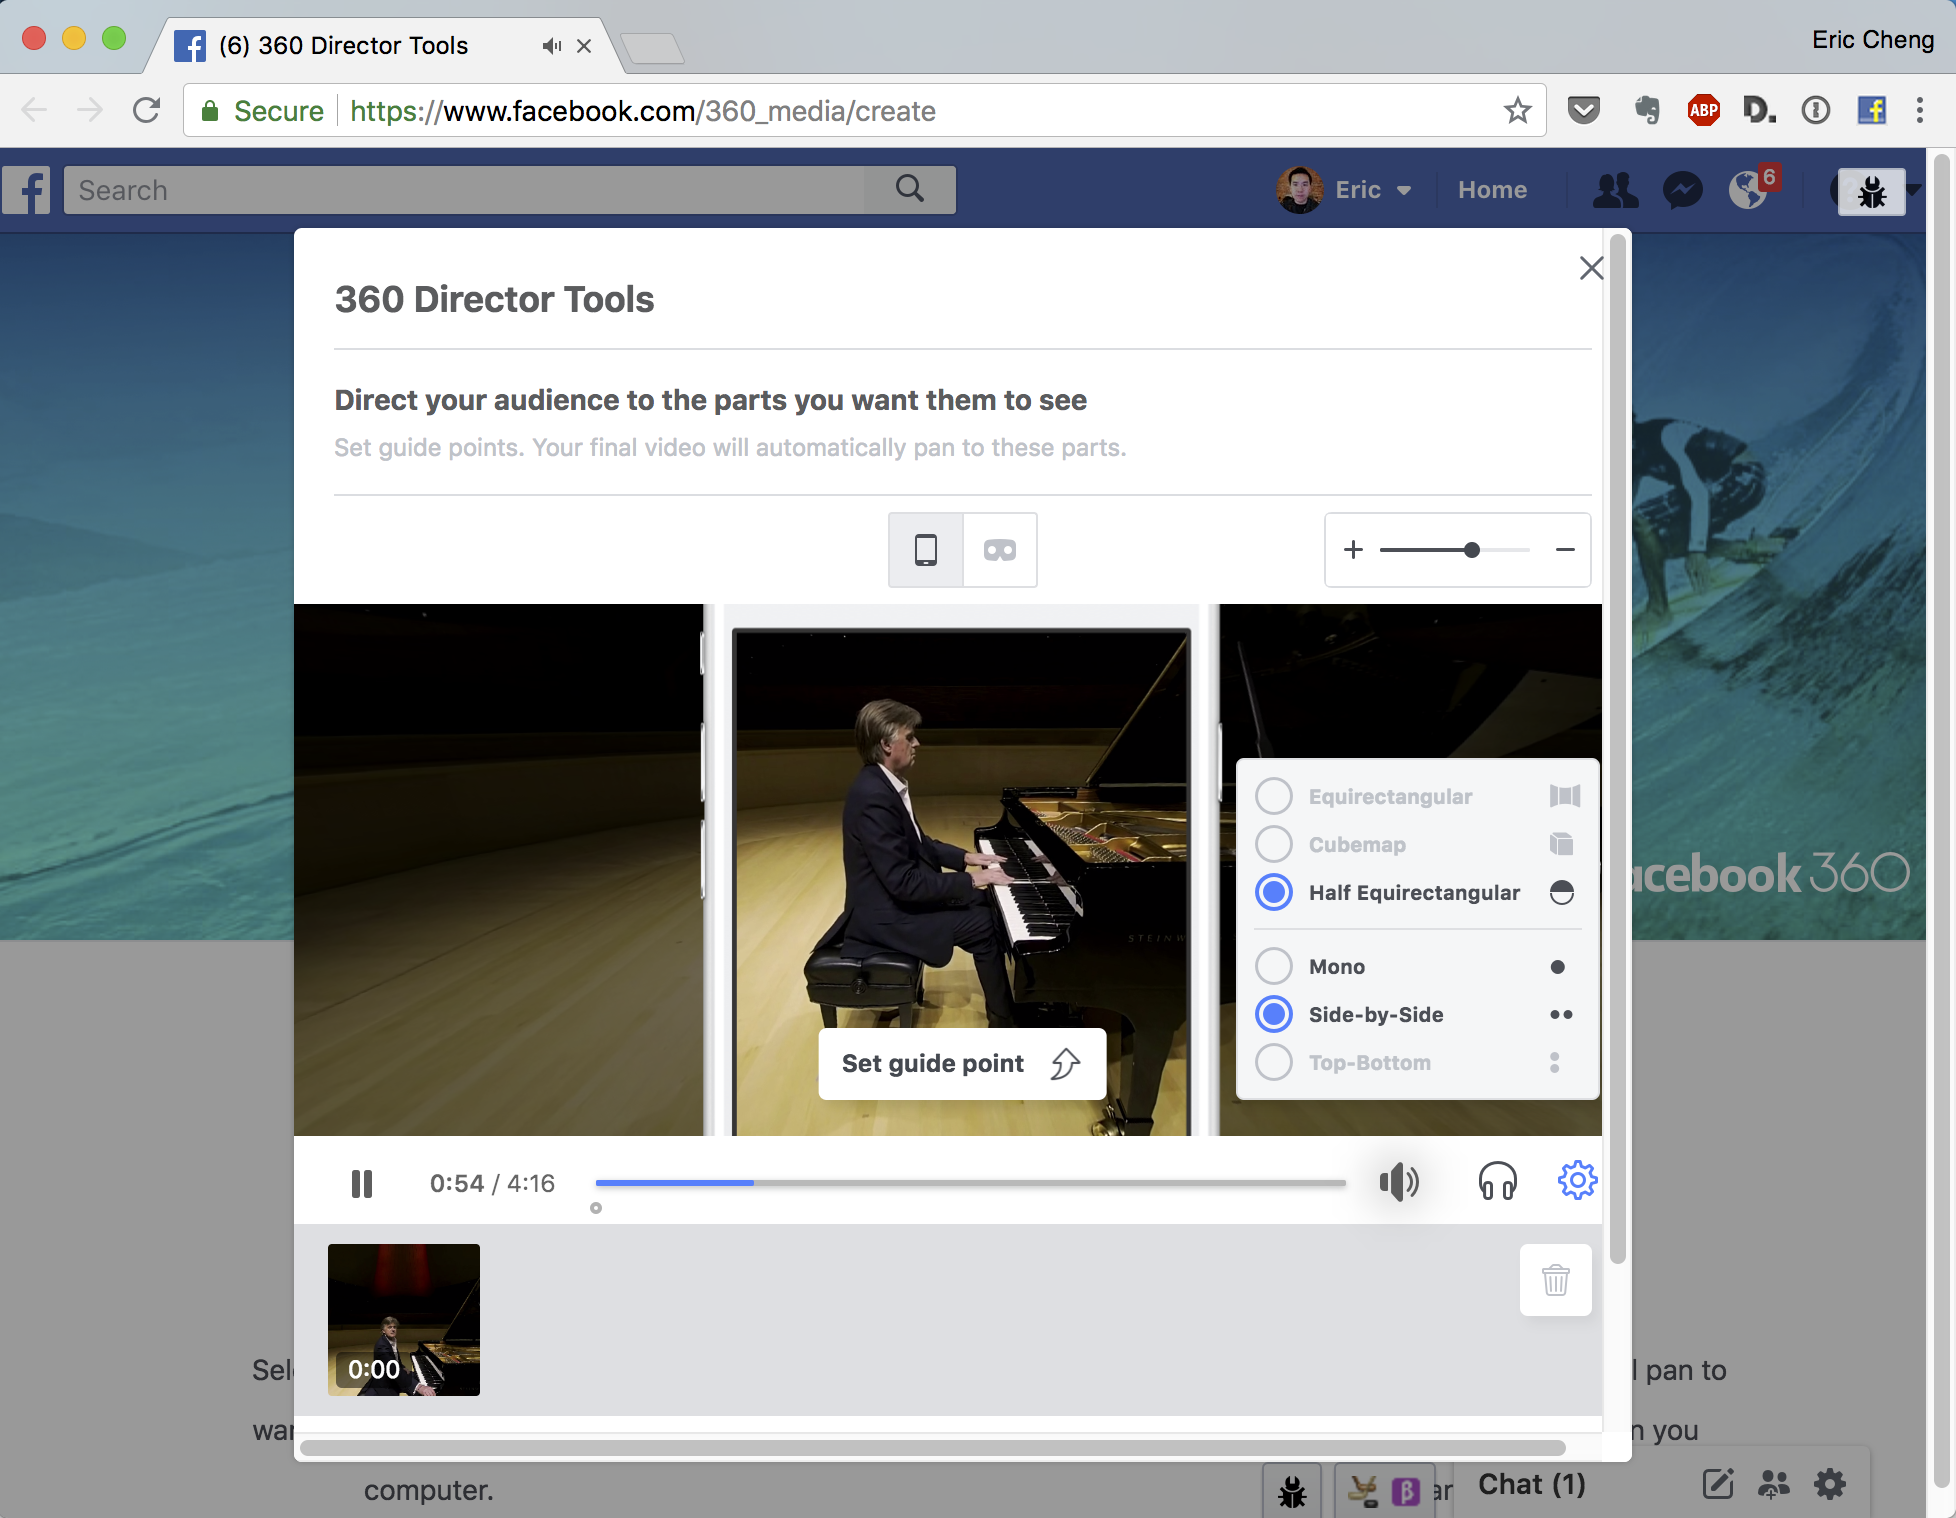 How to upload 3D-180 VR video to Facebook » Eric Cheng